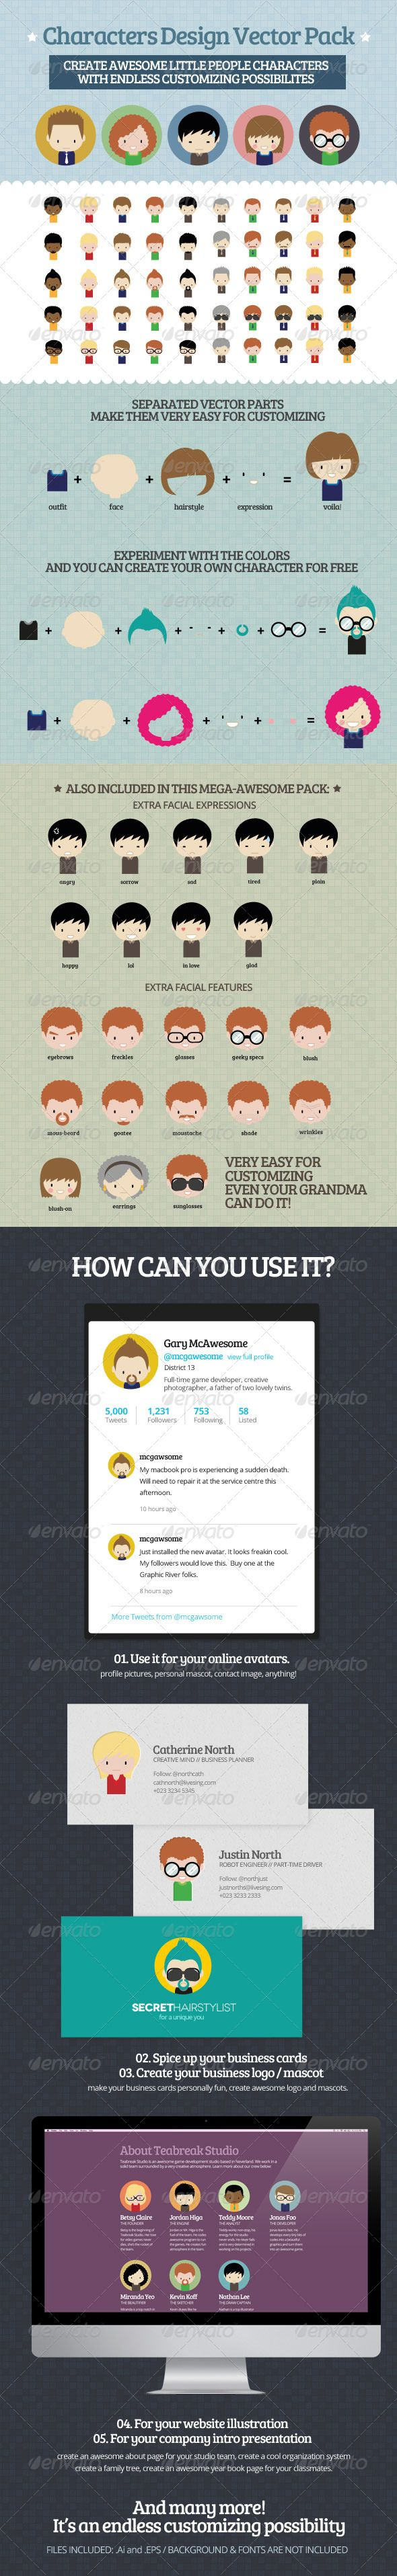 Characters Design Vector Pack_Purchase : http://graphicriver.net/item/characters-design-vector-pack/2095292?ref=ThemeTruly